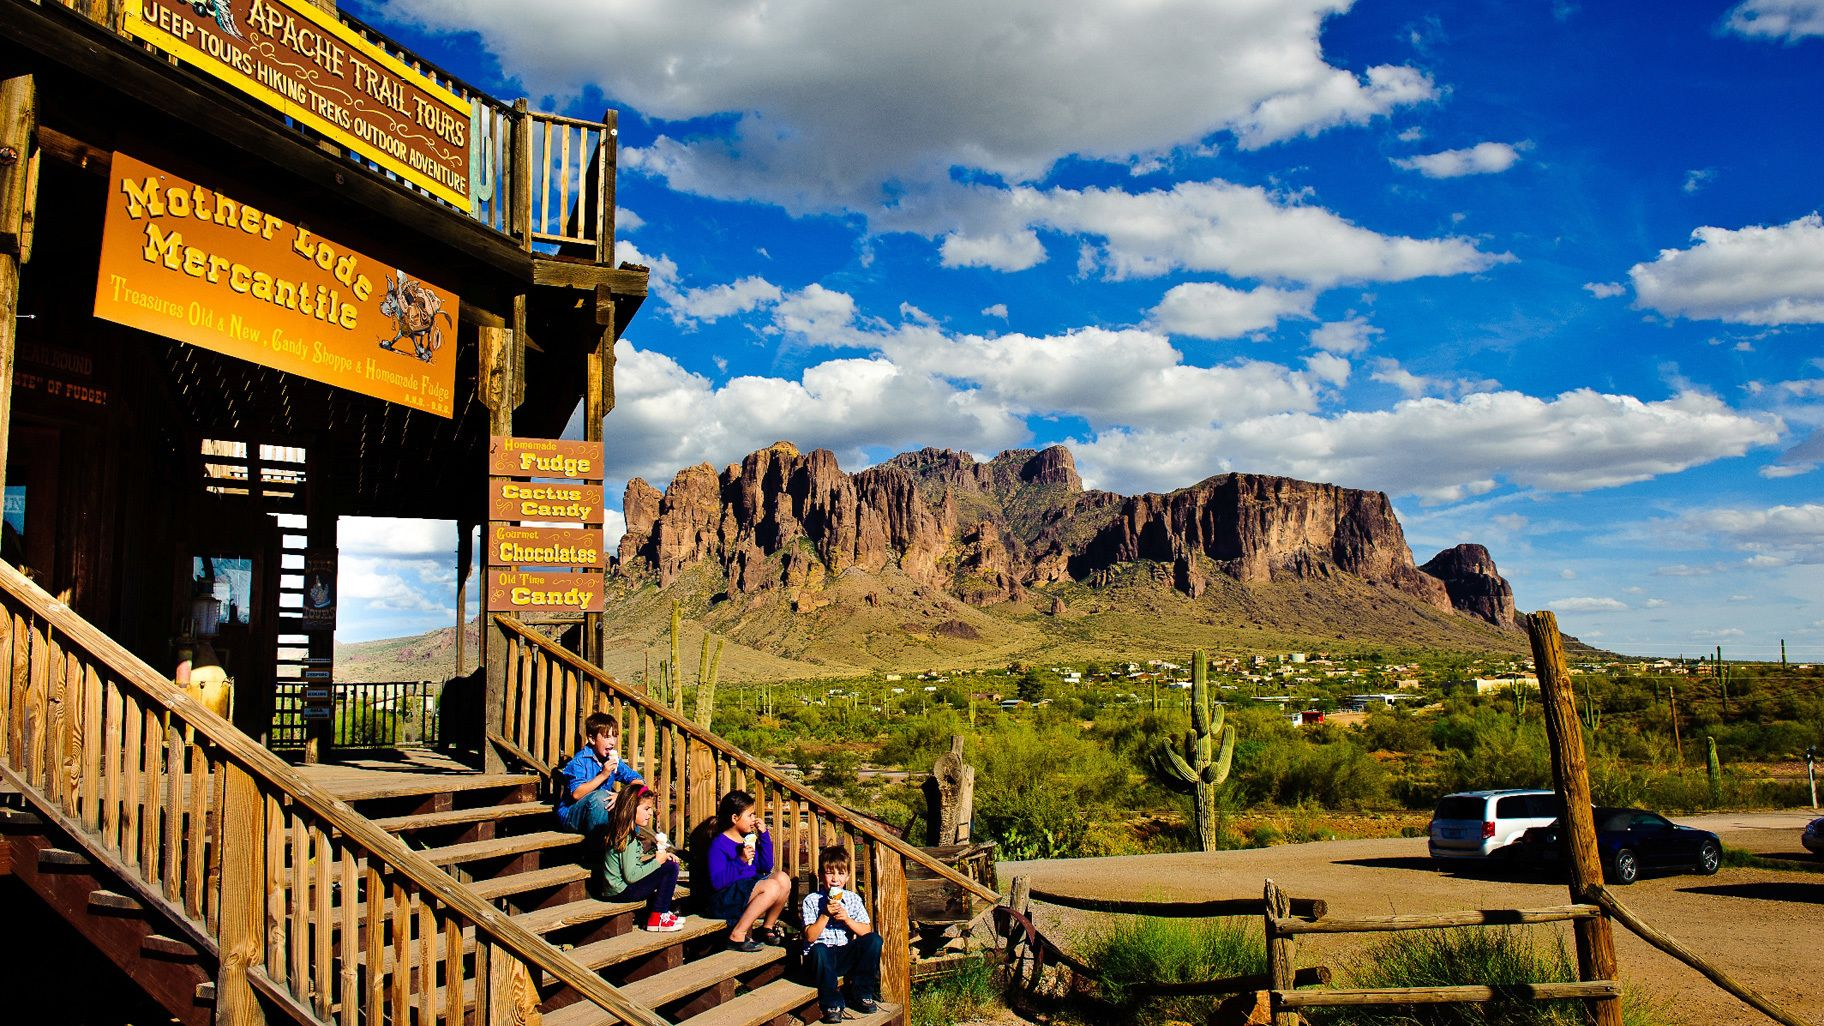 Historic Apache Trail & Sonoran Desert Tour